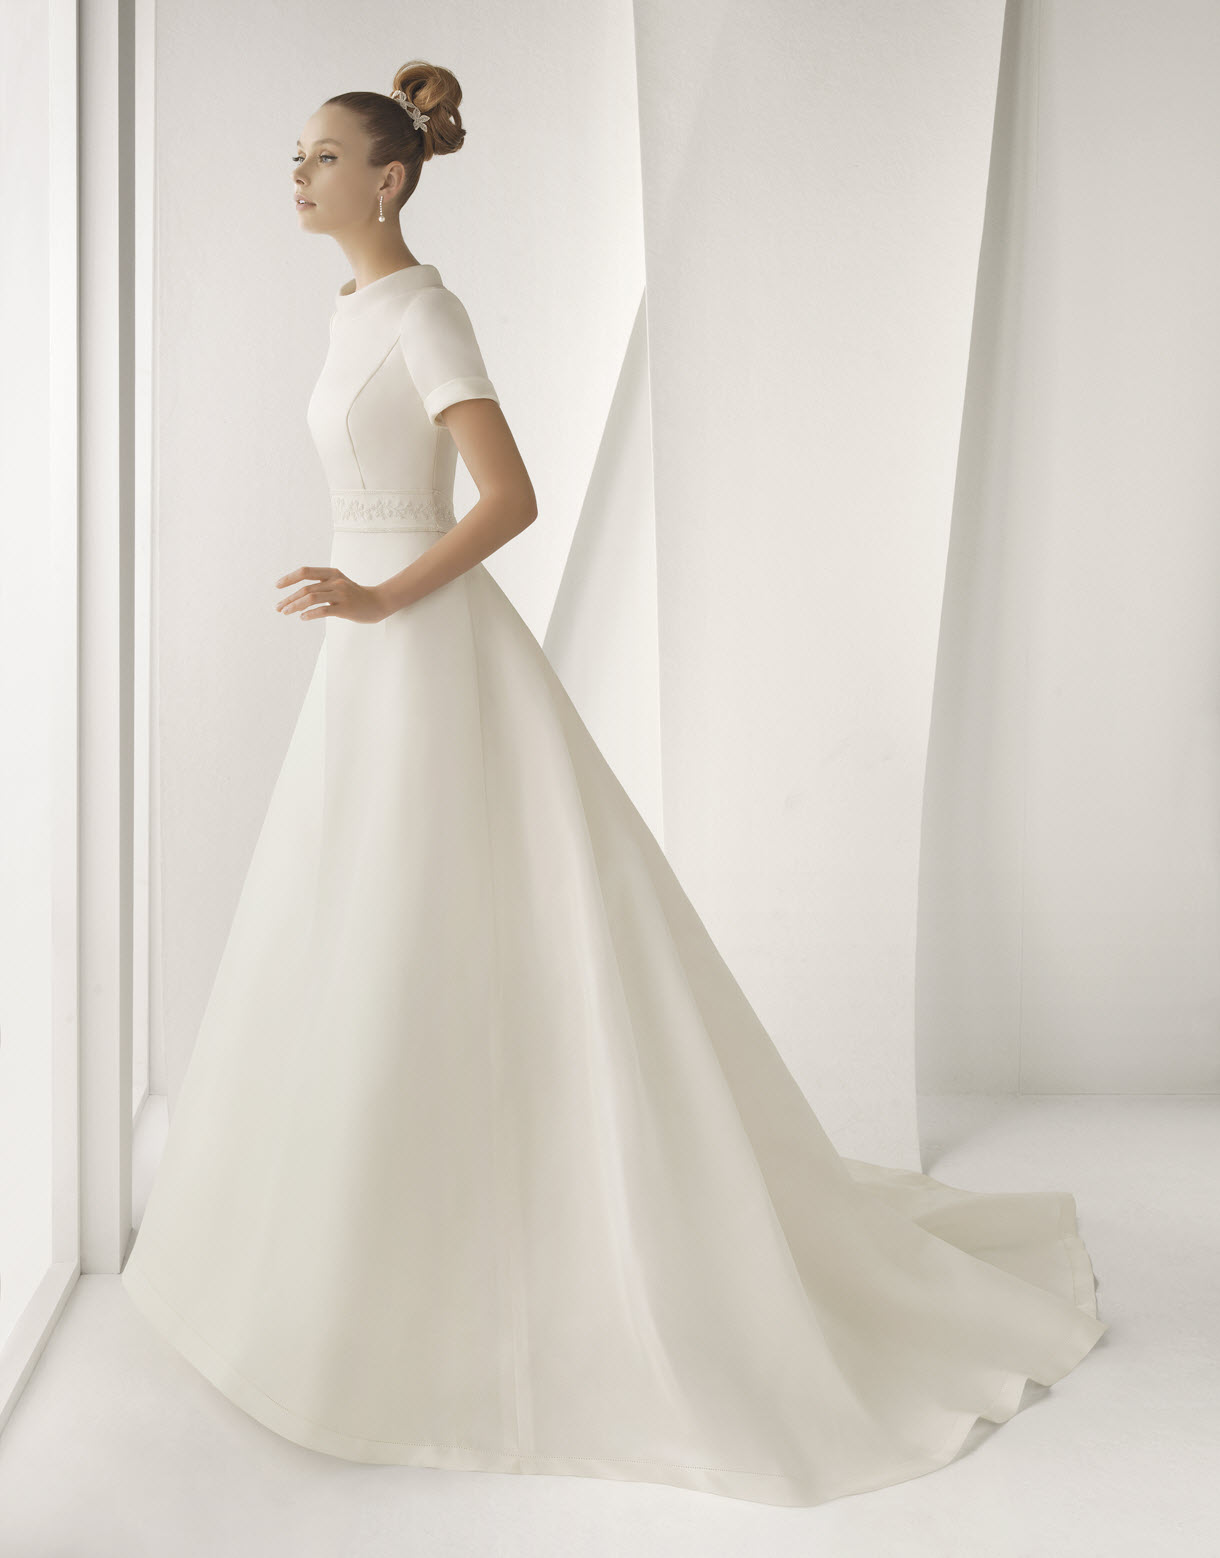 Aixa-spring-2012-wedding-dress-rosa-clara-bridal-gowns-modest-bateau-neck-sleeves.original